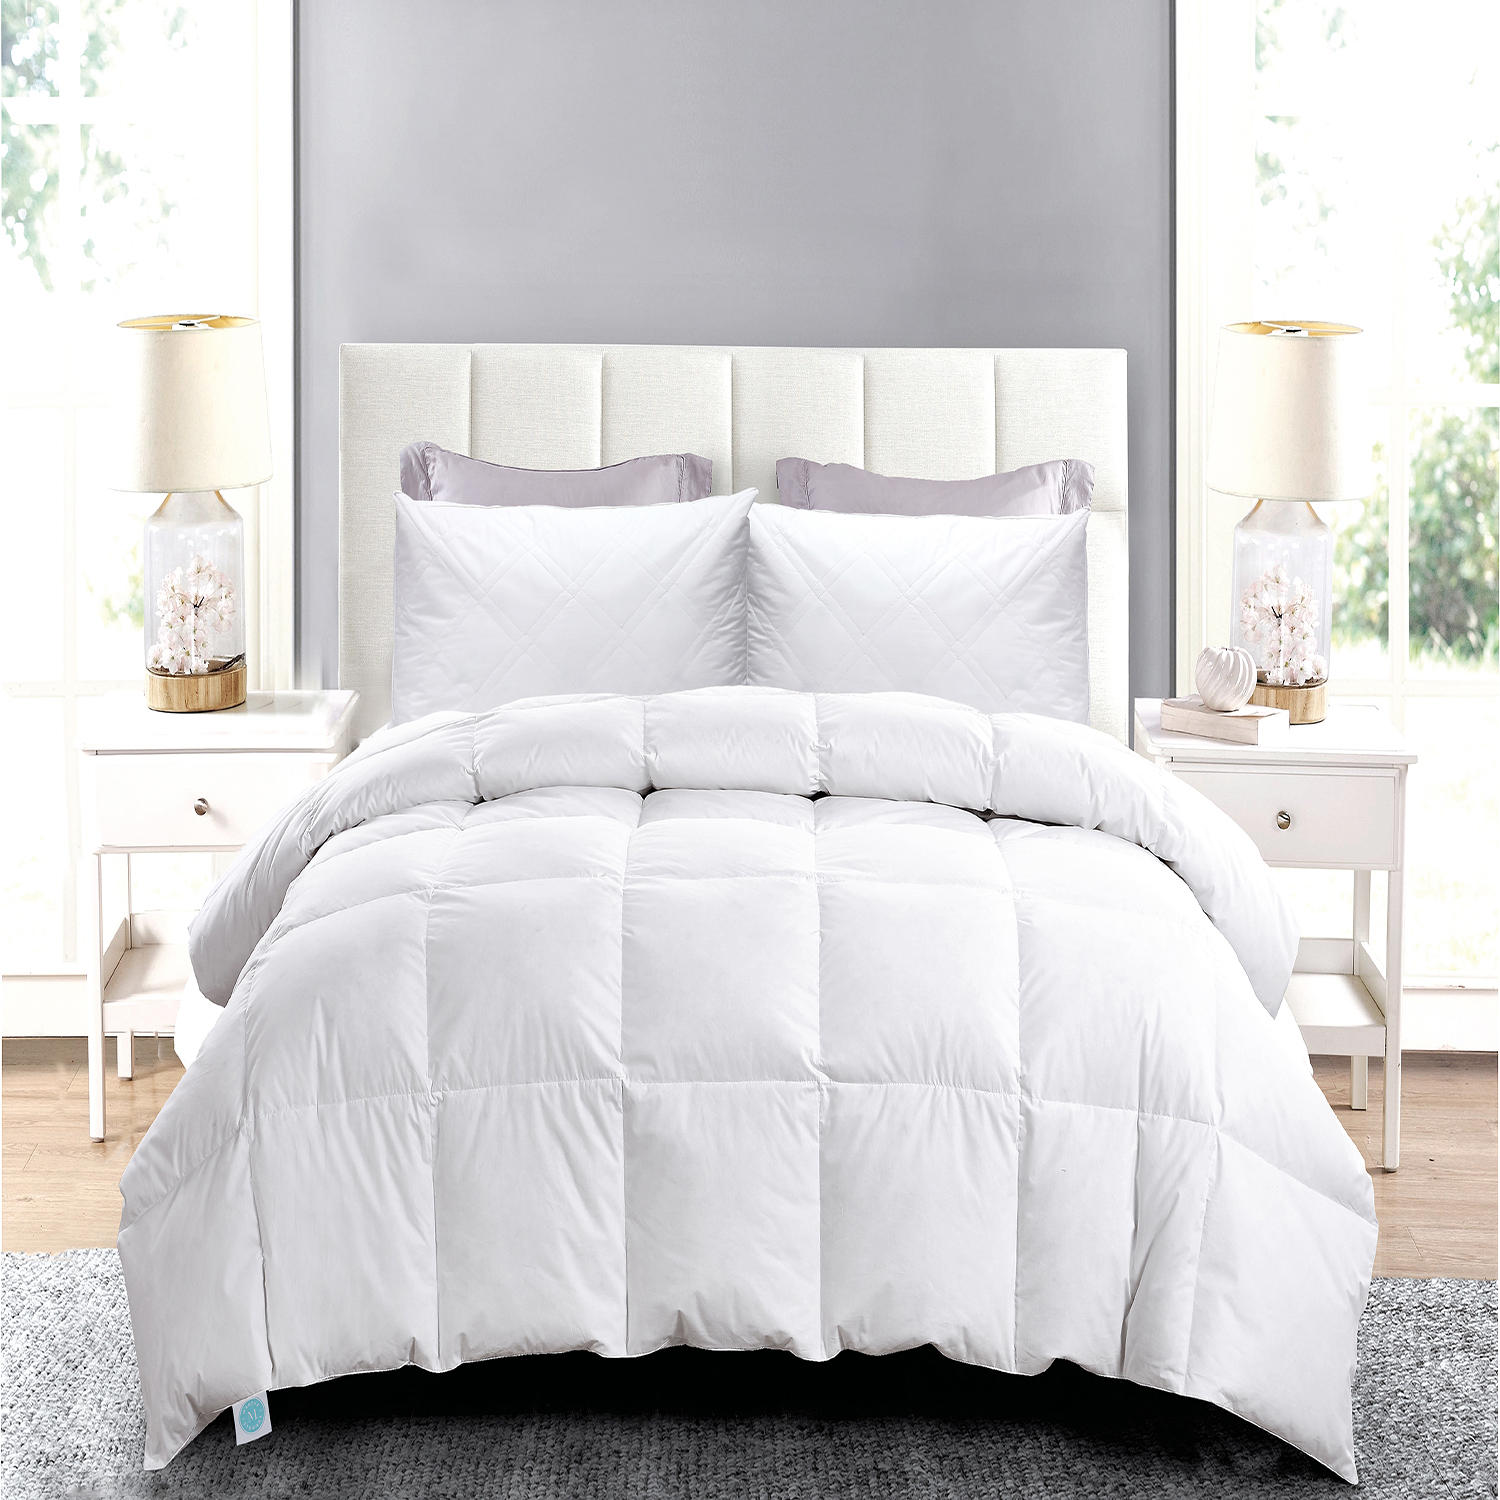 Blue Ridge White Goose Comforter Set with Comforter and Quilted Pillow Set, 2 pillows